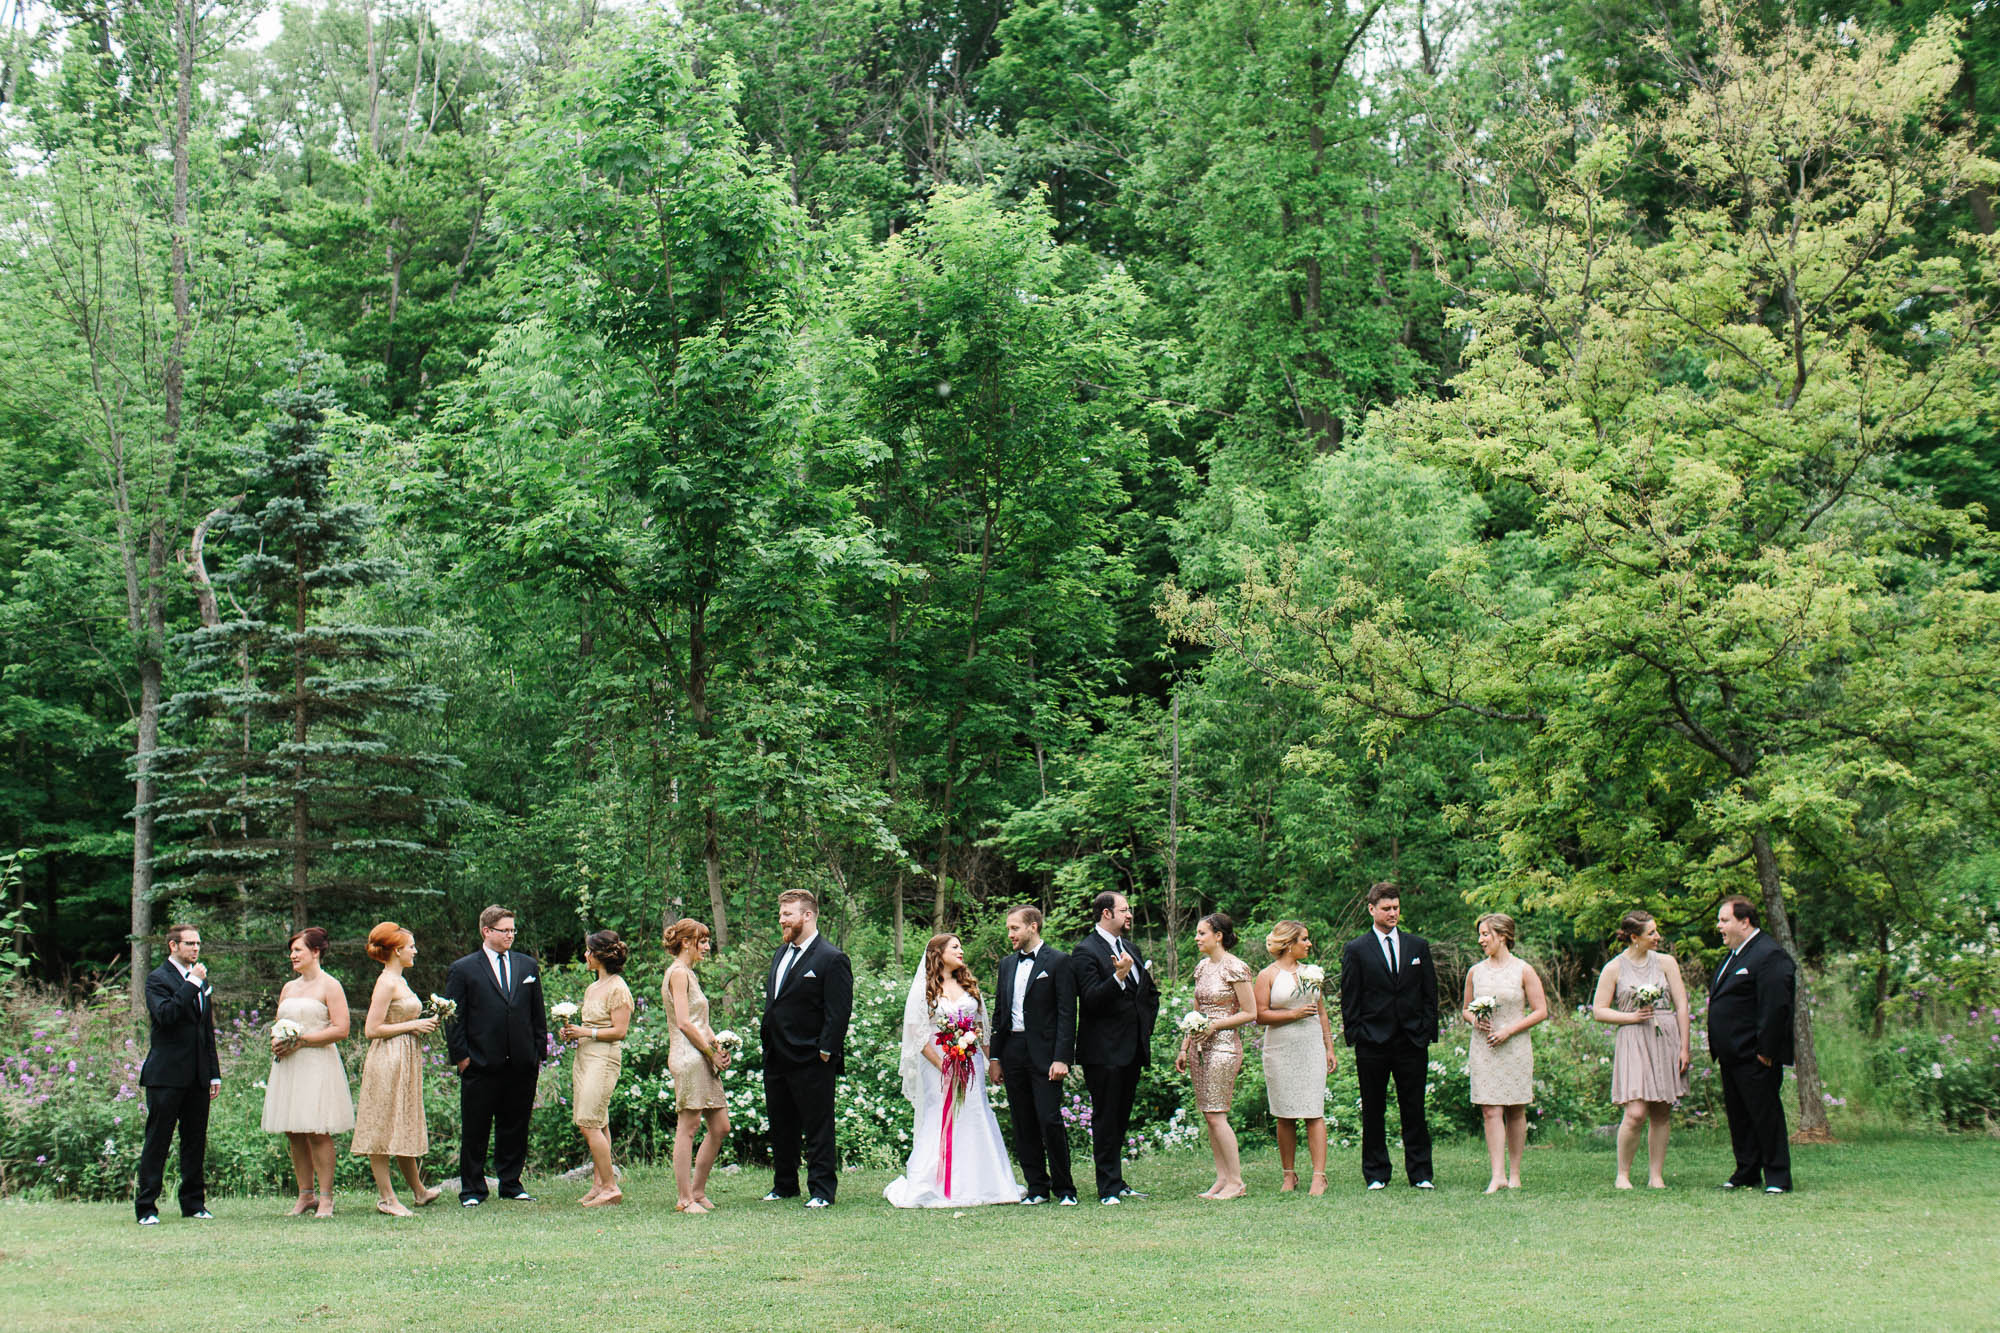 www-marycostaphotography-com-buffalo-ny-wedding-064